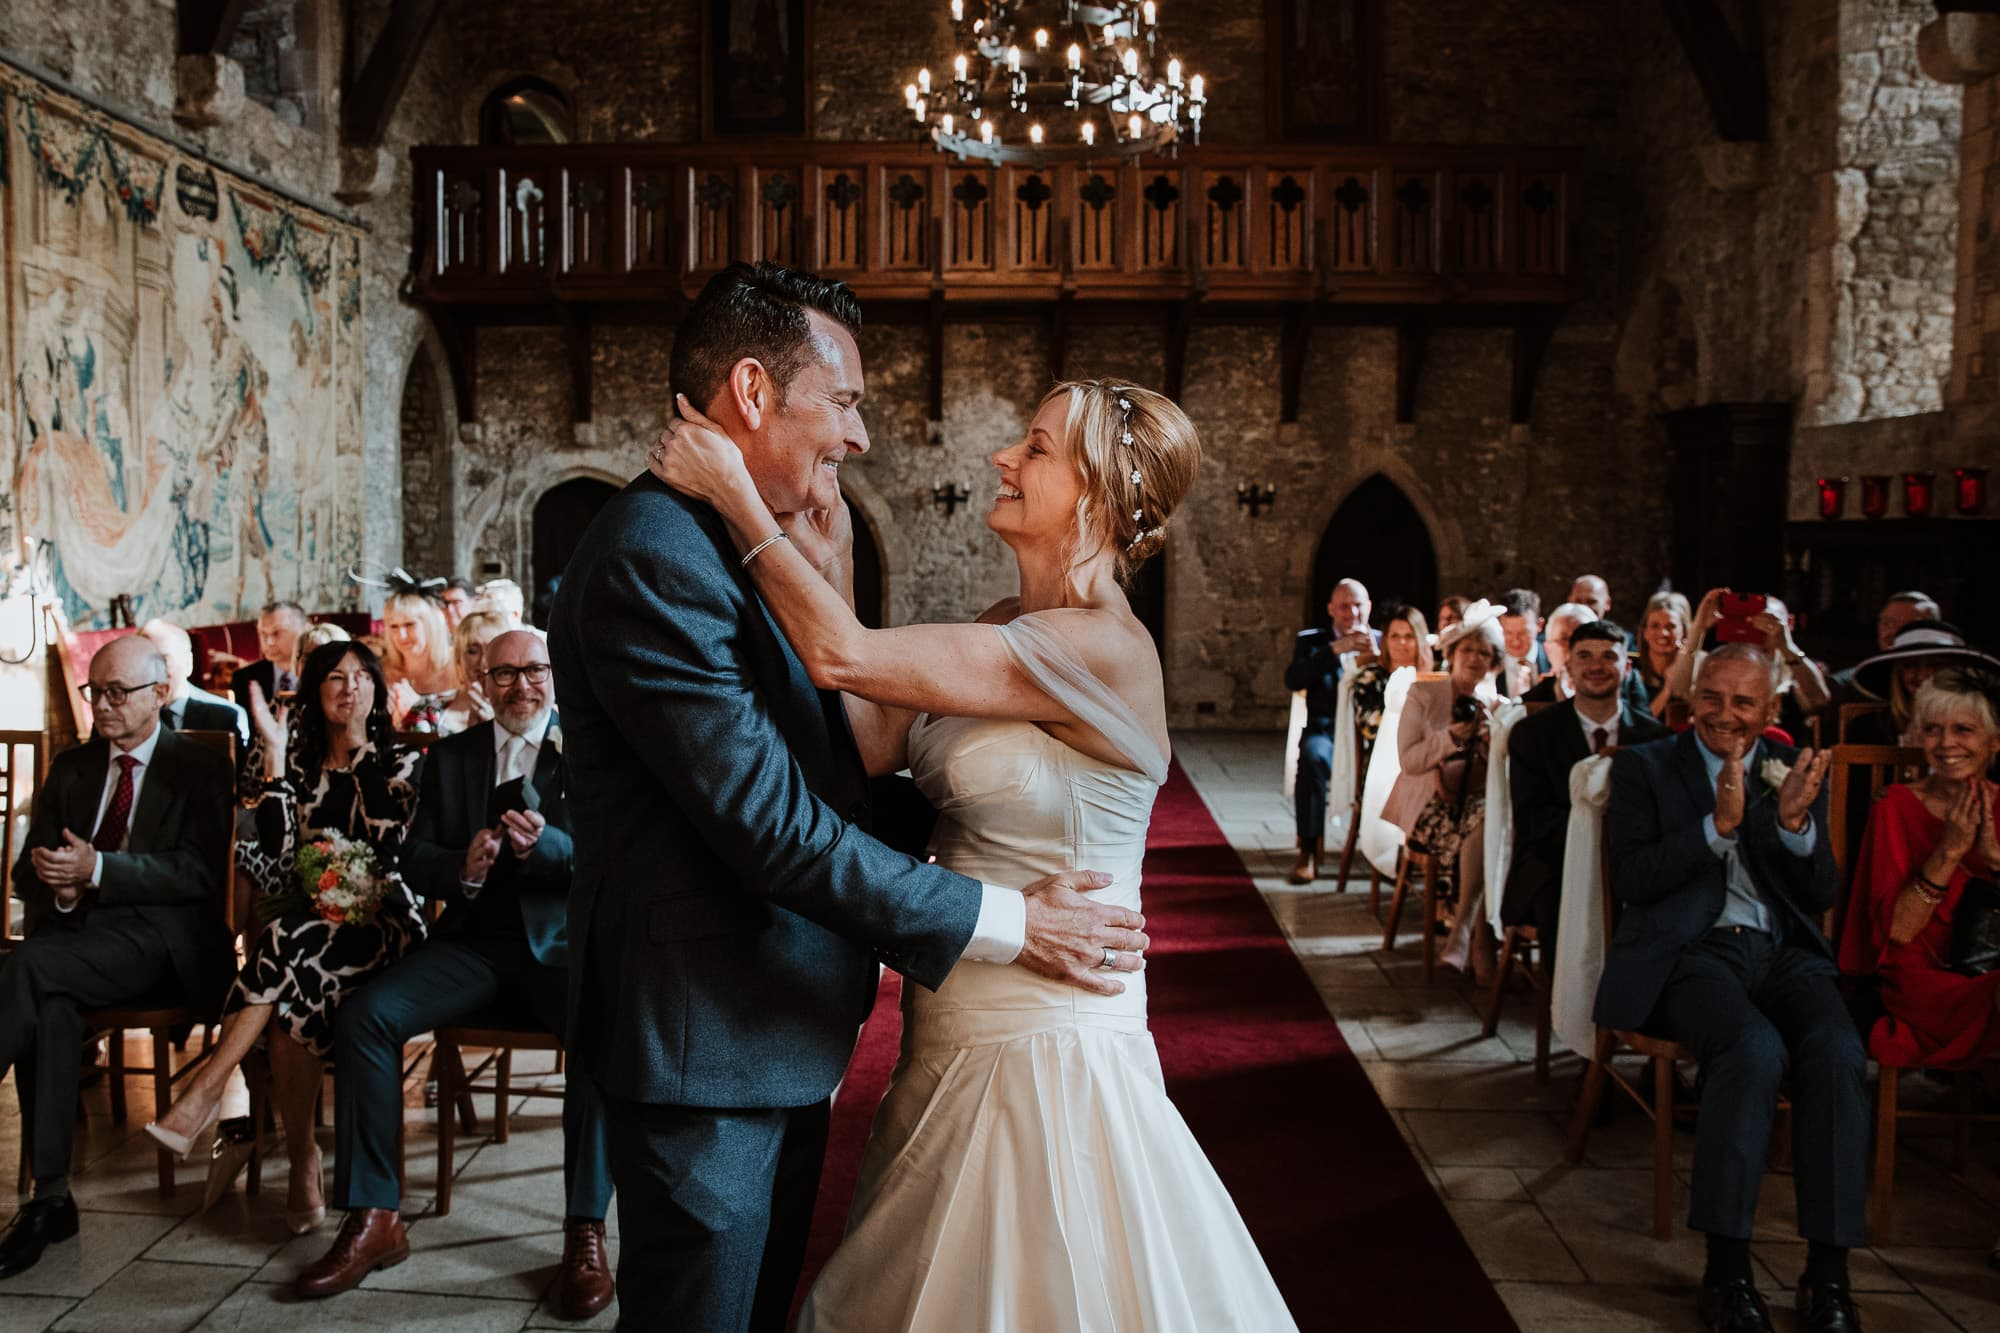 Bride and Groom looking at each other smiling happily after their ceremony in the Great Hall